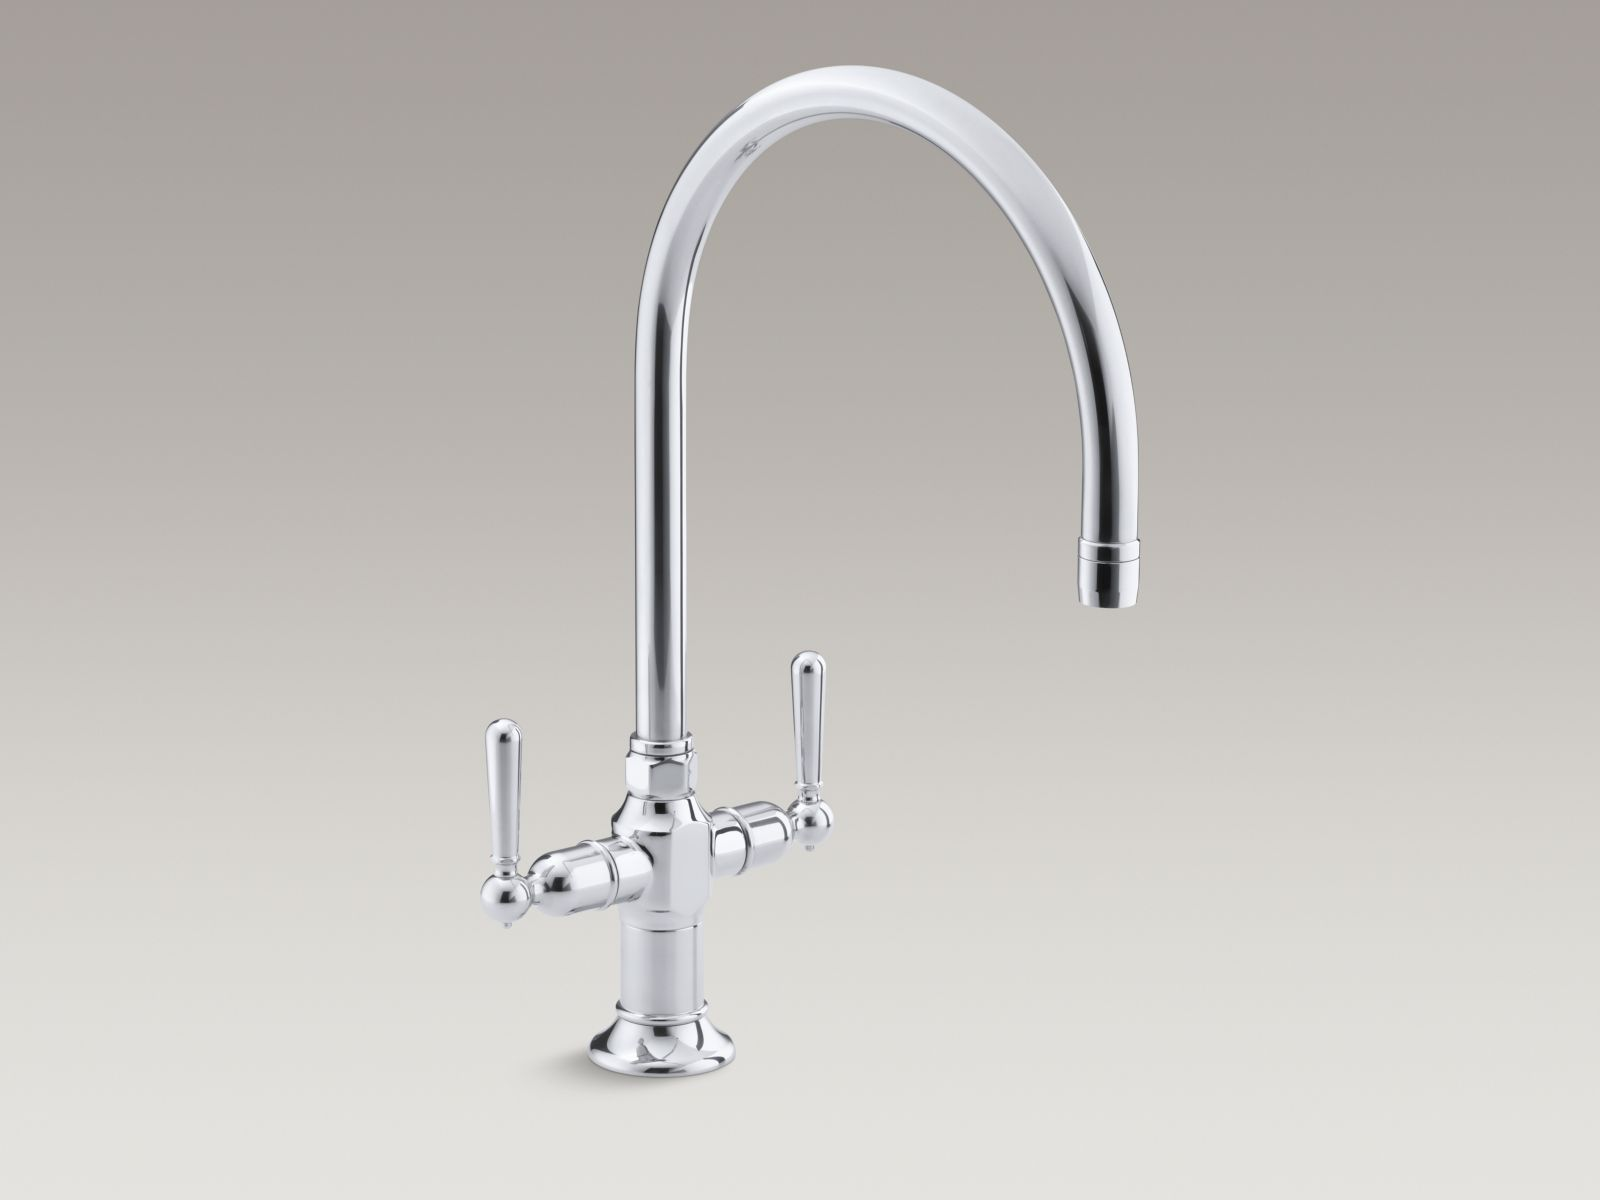 Kohler K 7341 4 S Hirise Single Hole Two Handle Kitchen Faucet With